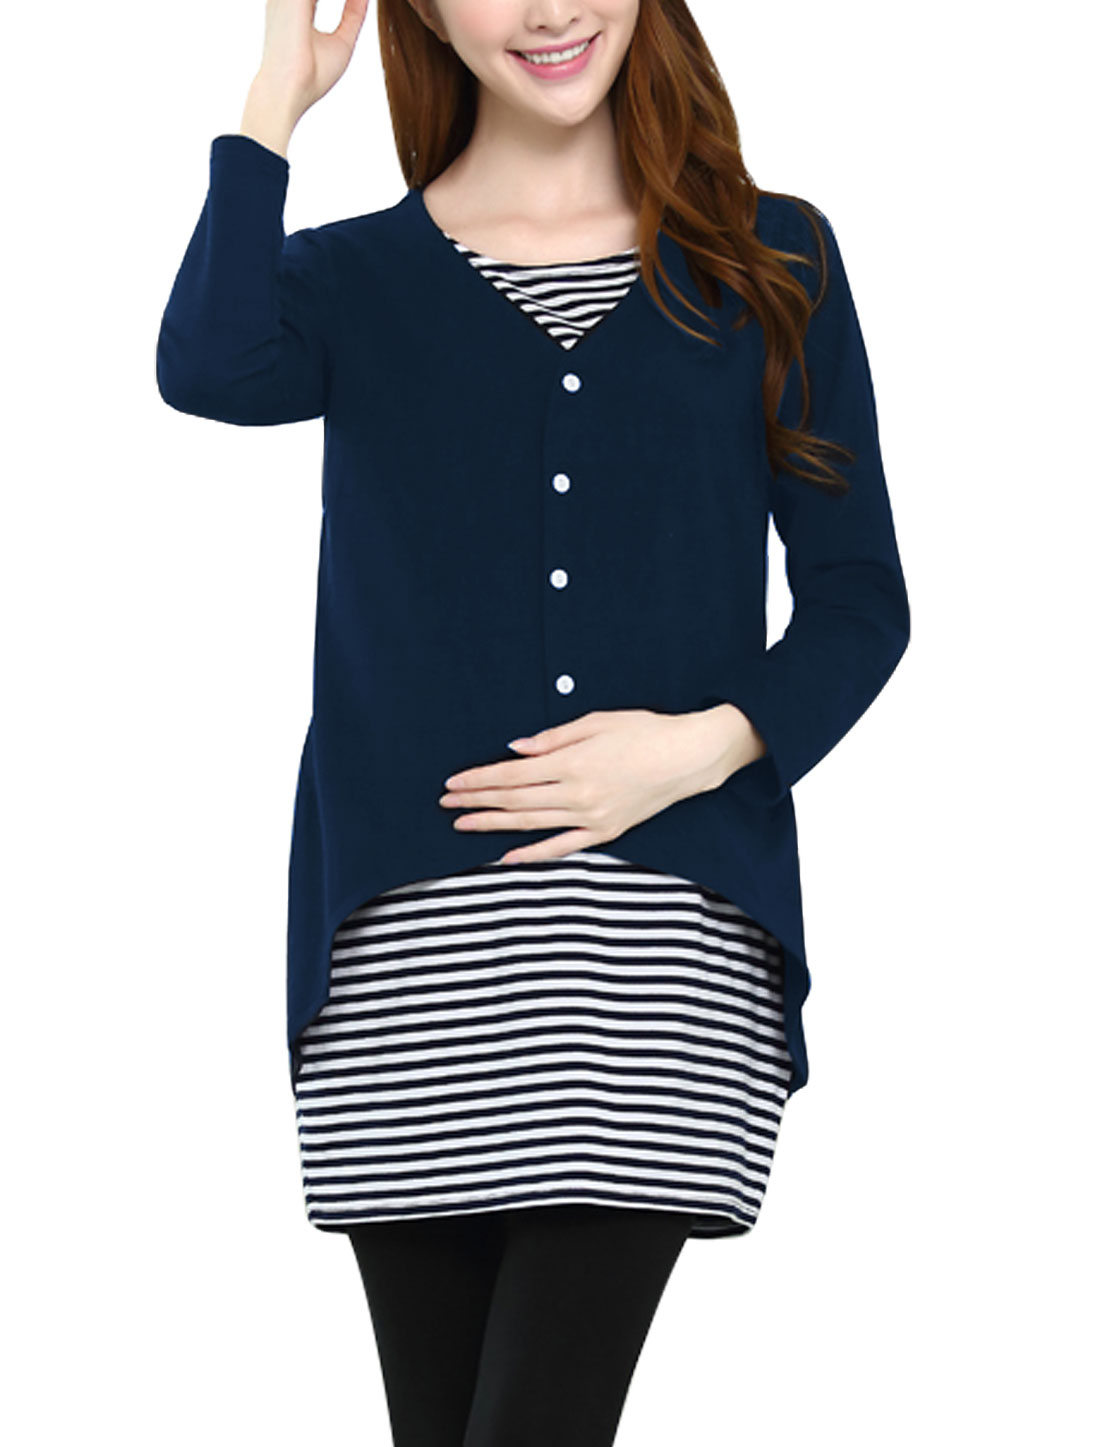 XK20 Maternity Stripes Pattern Cozy Fit Tunic Top Navy Blue Black L/M (US 8)